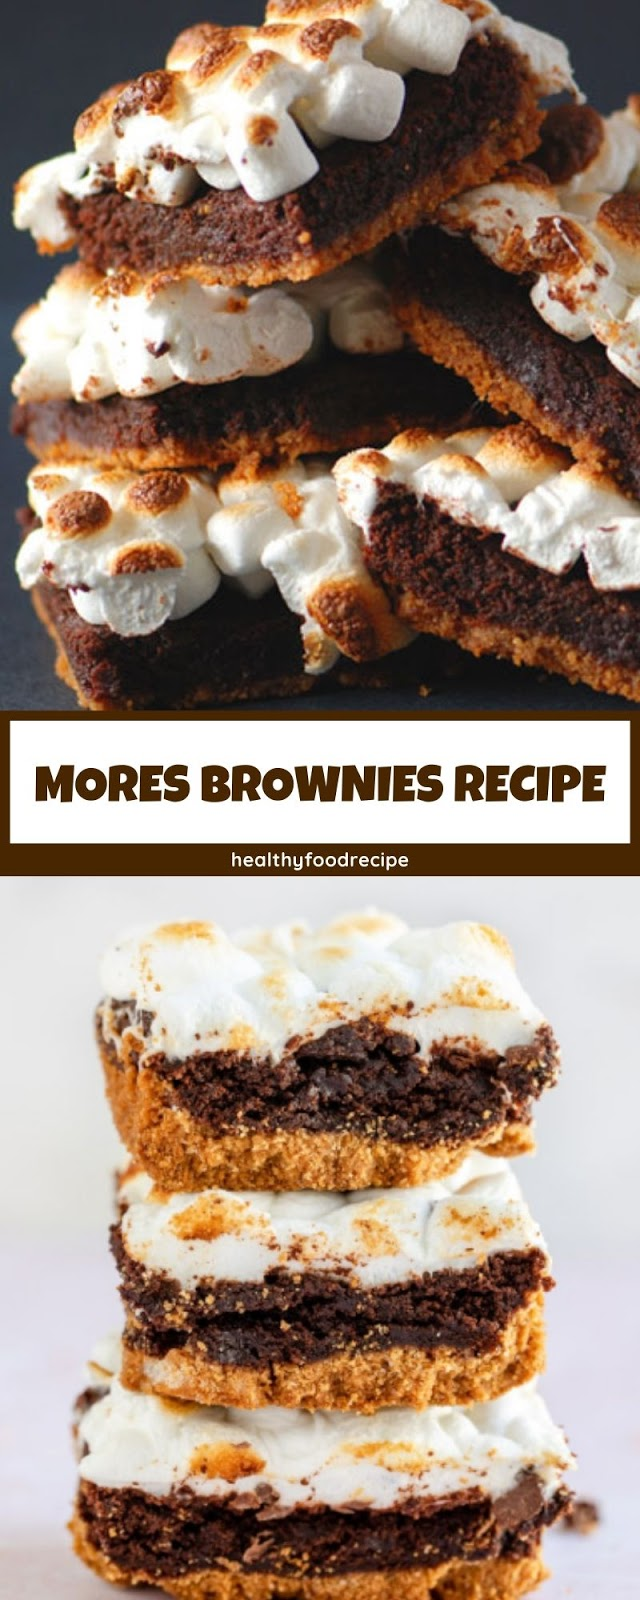 MORES BROWNIES RECIPE